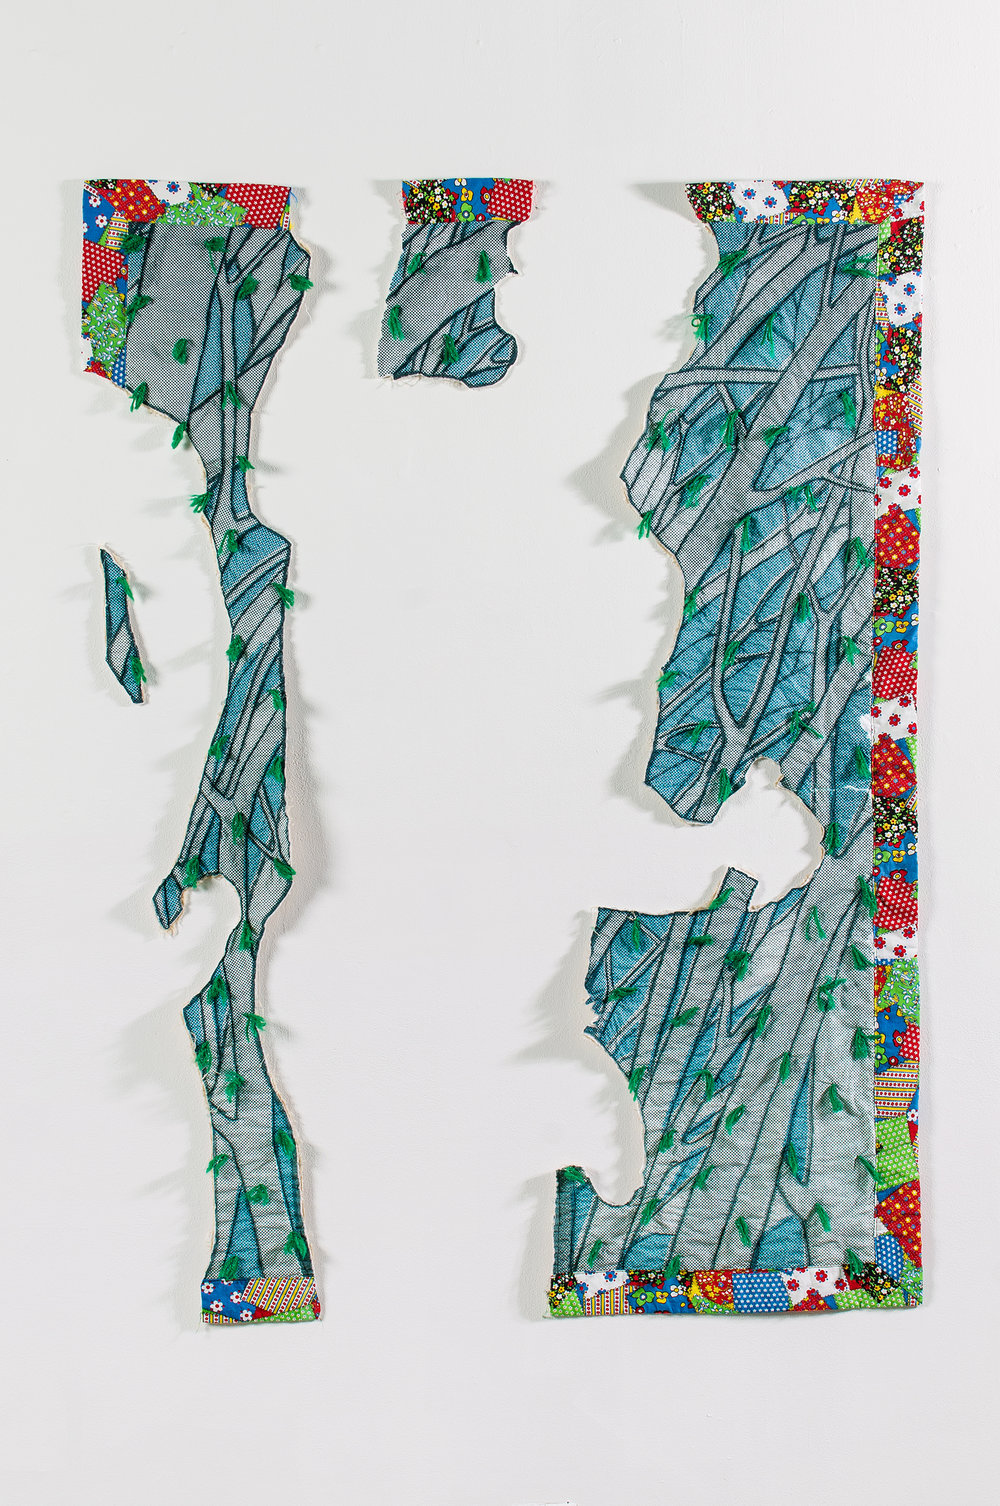 Aaron McIntosh,   Forest Frolic , 2013  Vintage cotton fabric, digital textile print, batting, thread, acrylic yarn ties  Image courtesy of the artist